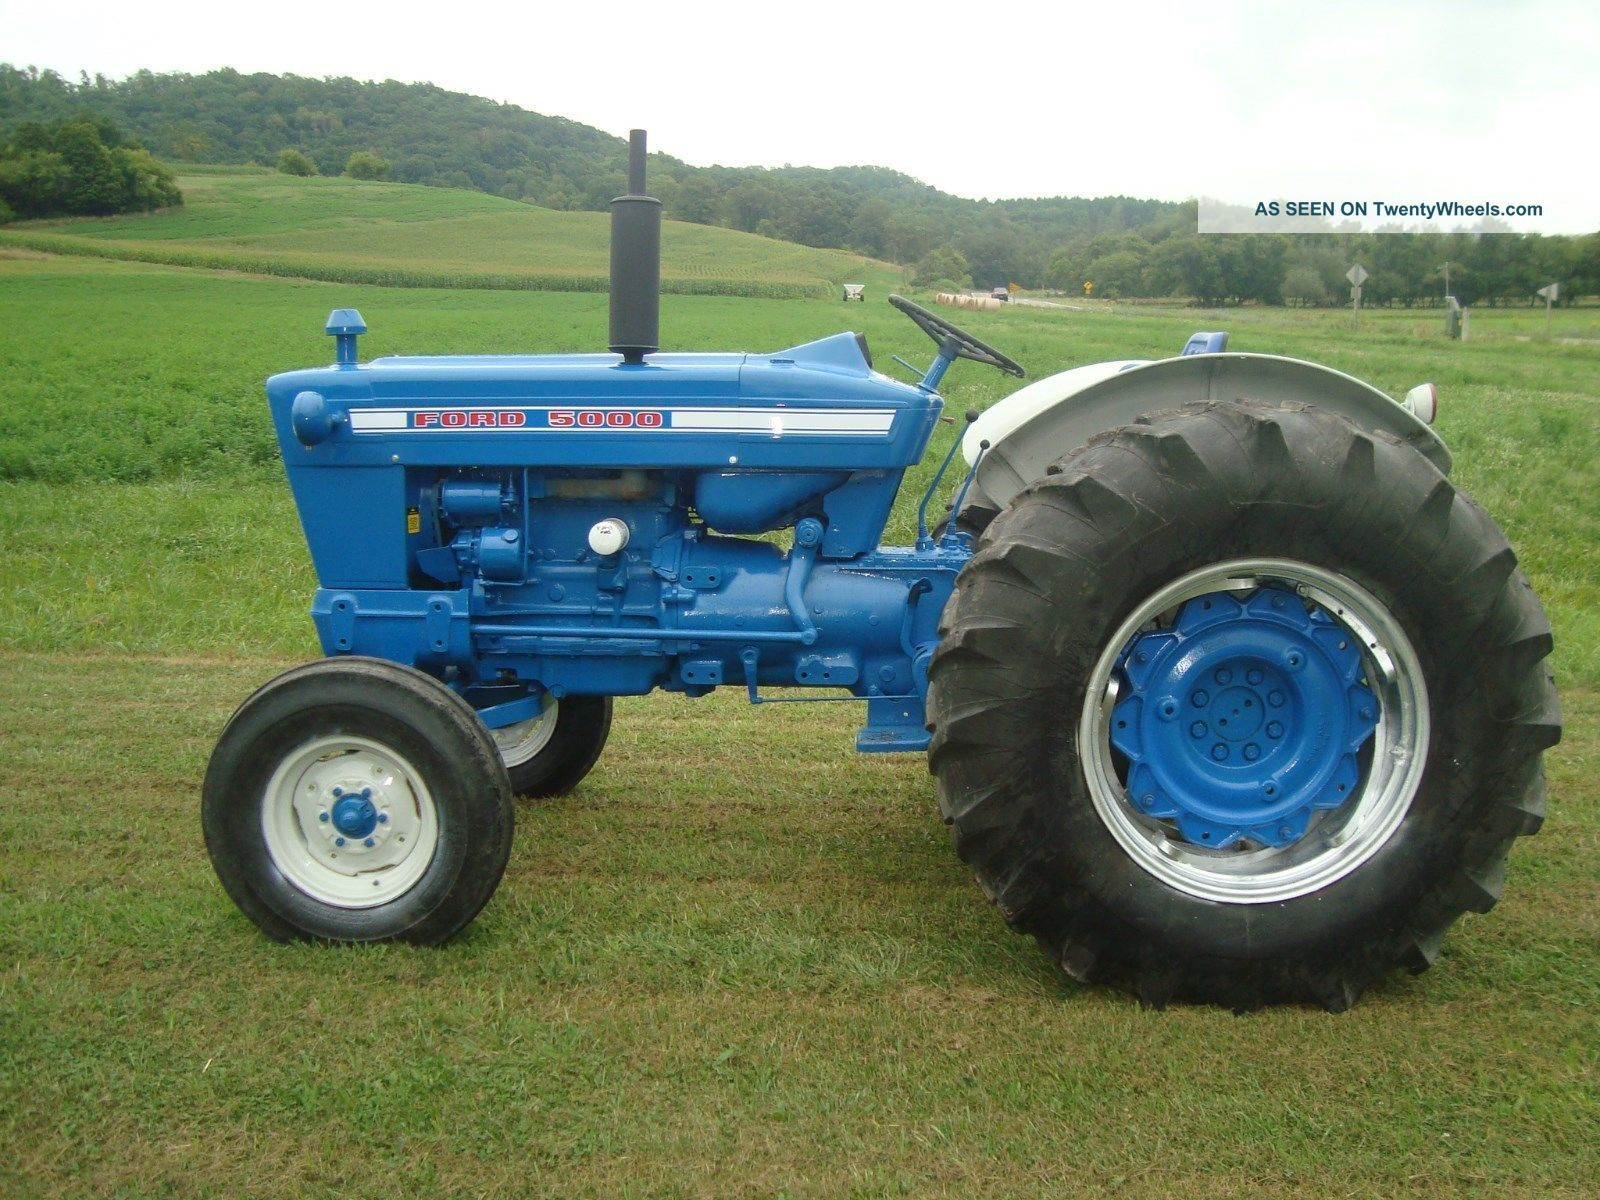 Ford Tractor Company : The ford was a blue and white tractor in production